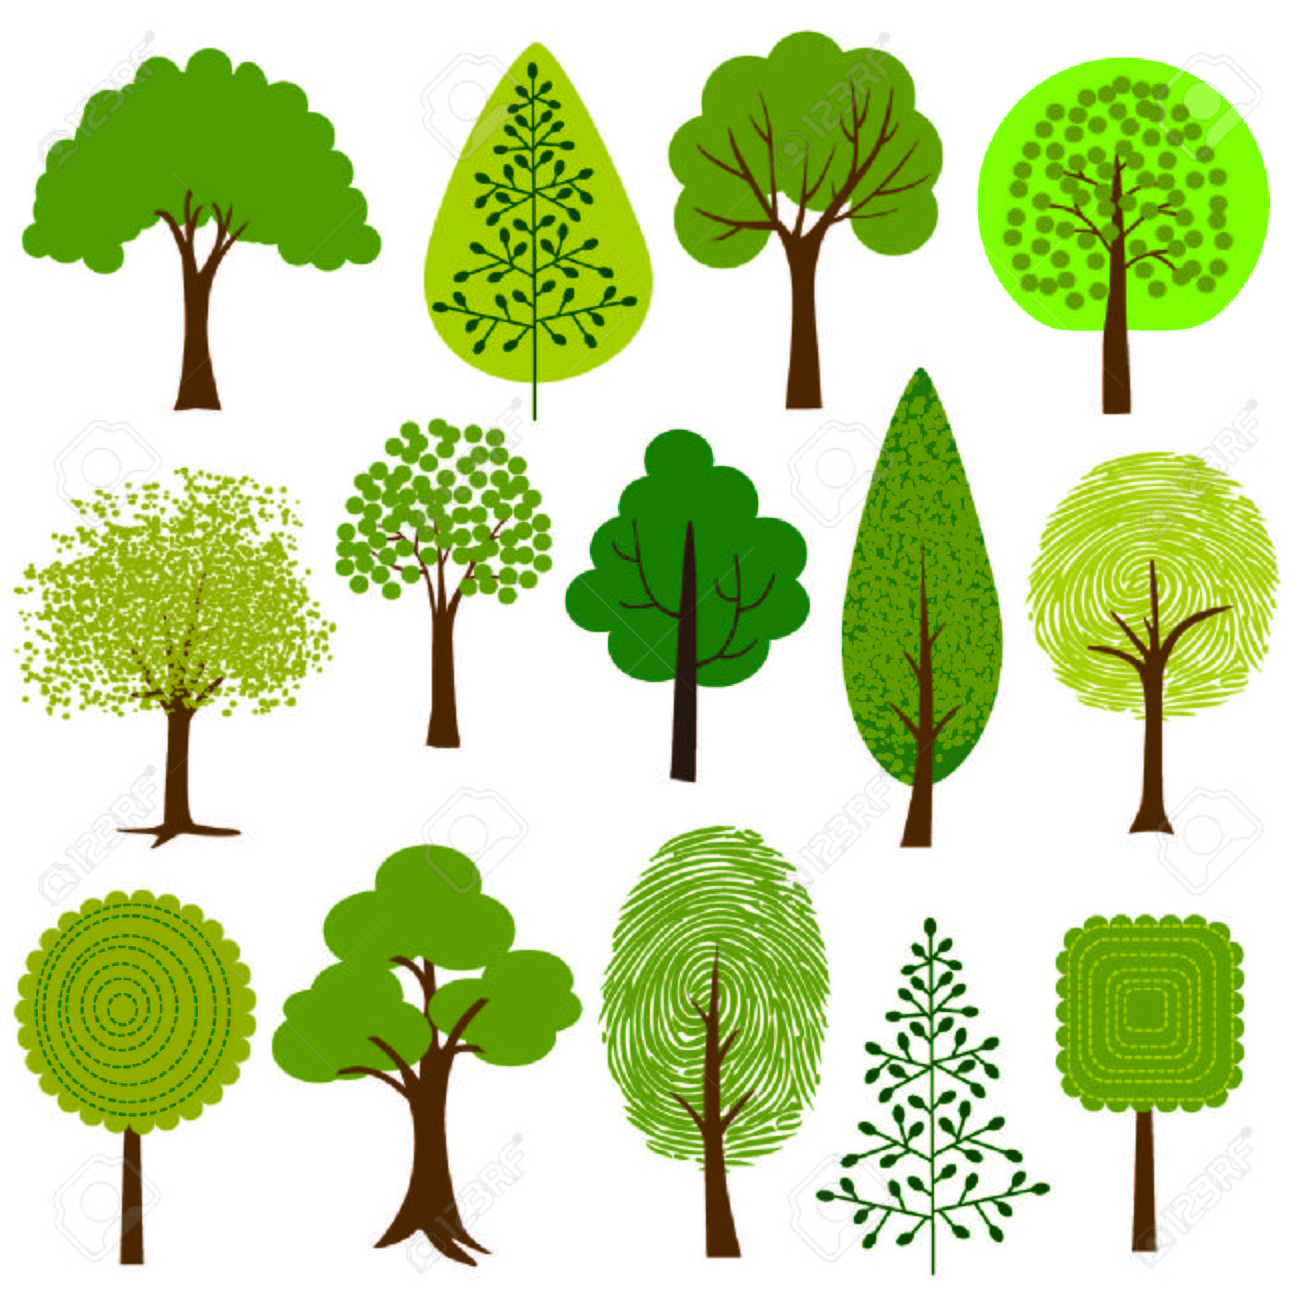 Image result for clip art trees